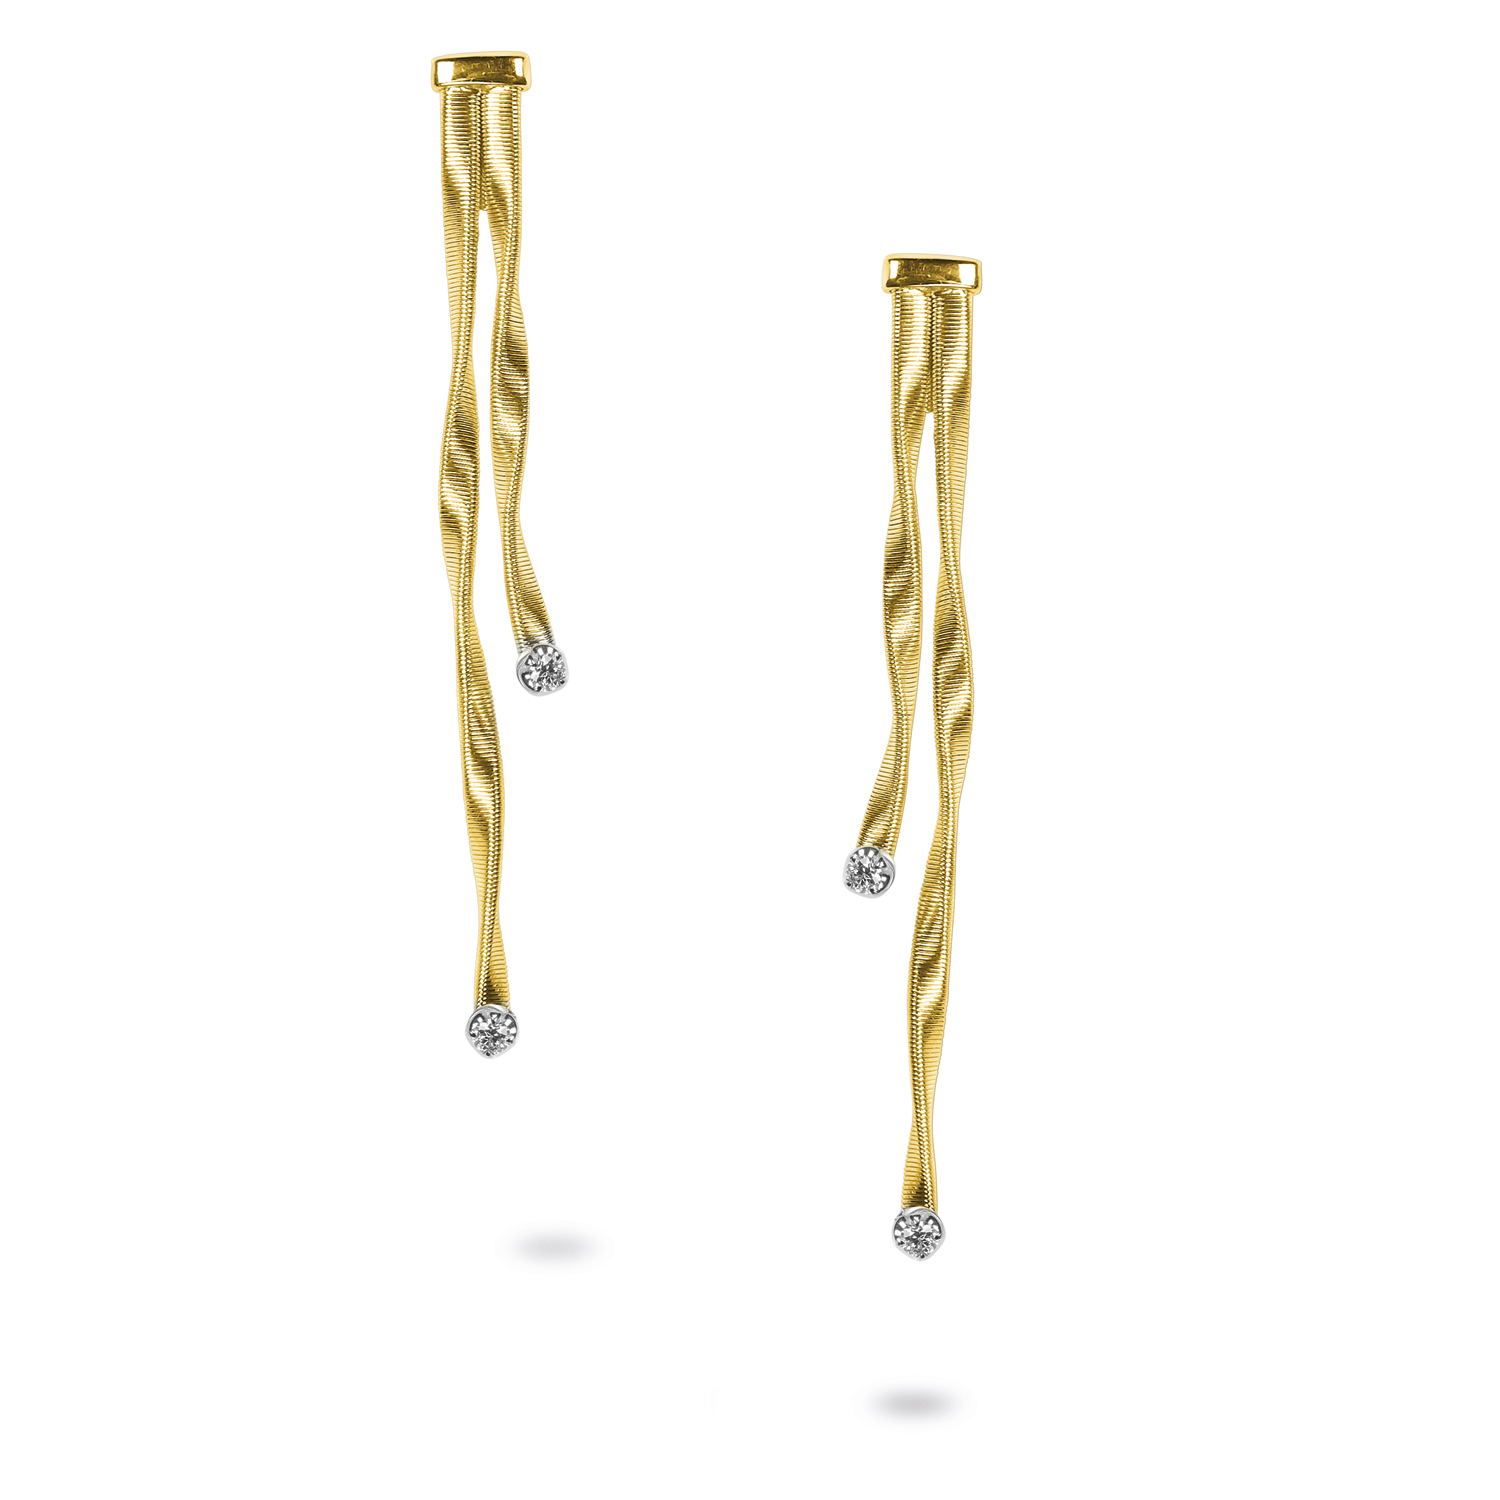 Marco Bicego Marrakech Two-Strand Diamond Earrings